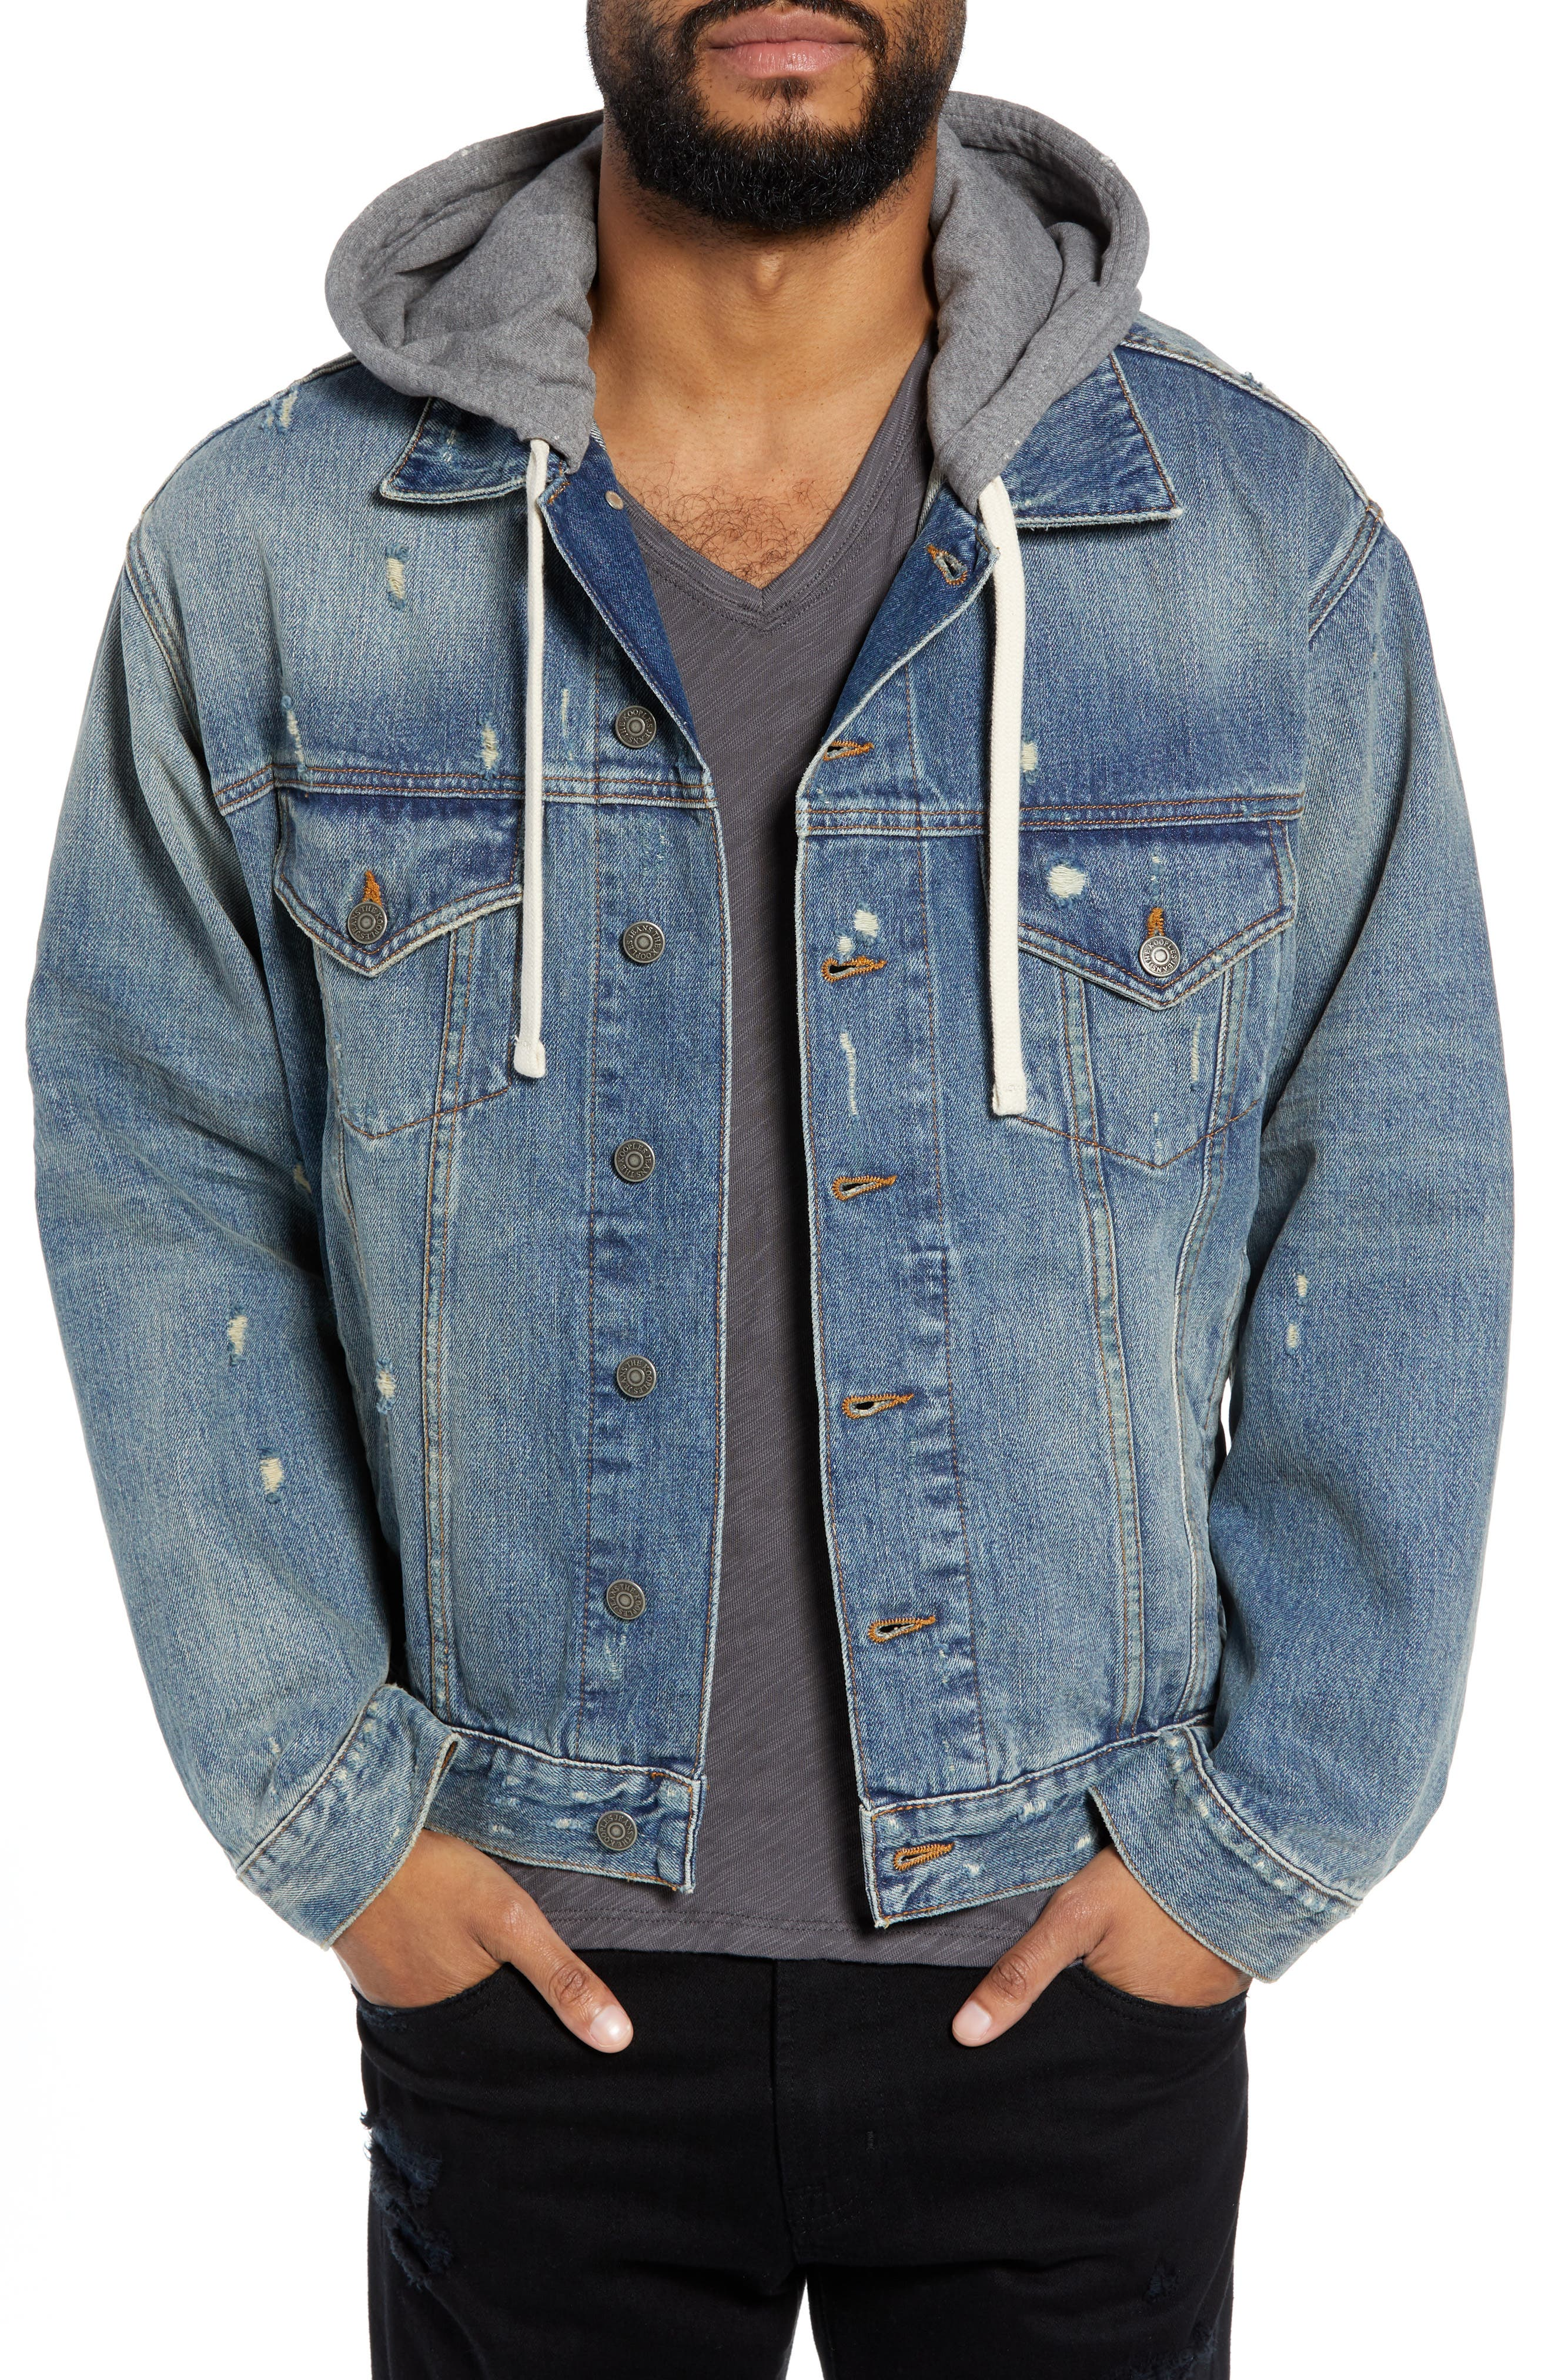 Oversized Distressed Denim Jacket with Hood,                             Main thumbnail 1, color,                             420